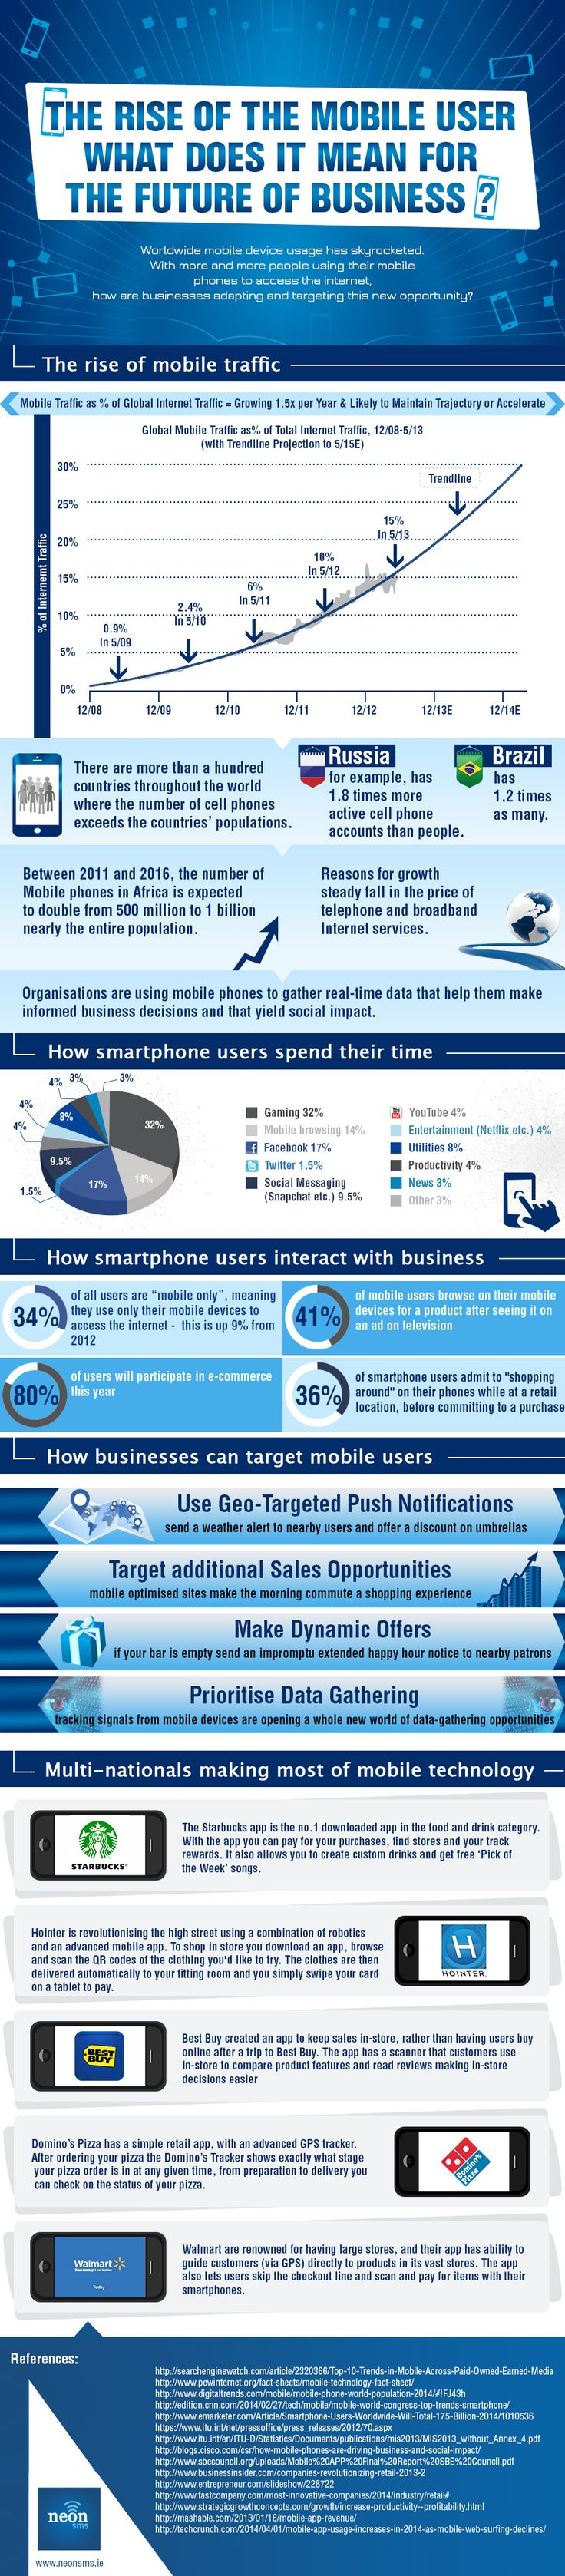 infographic mobile user